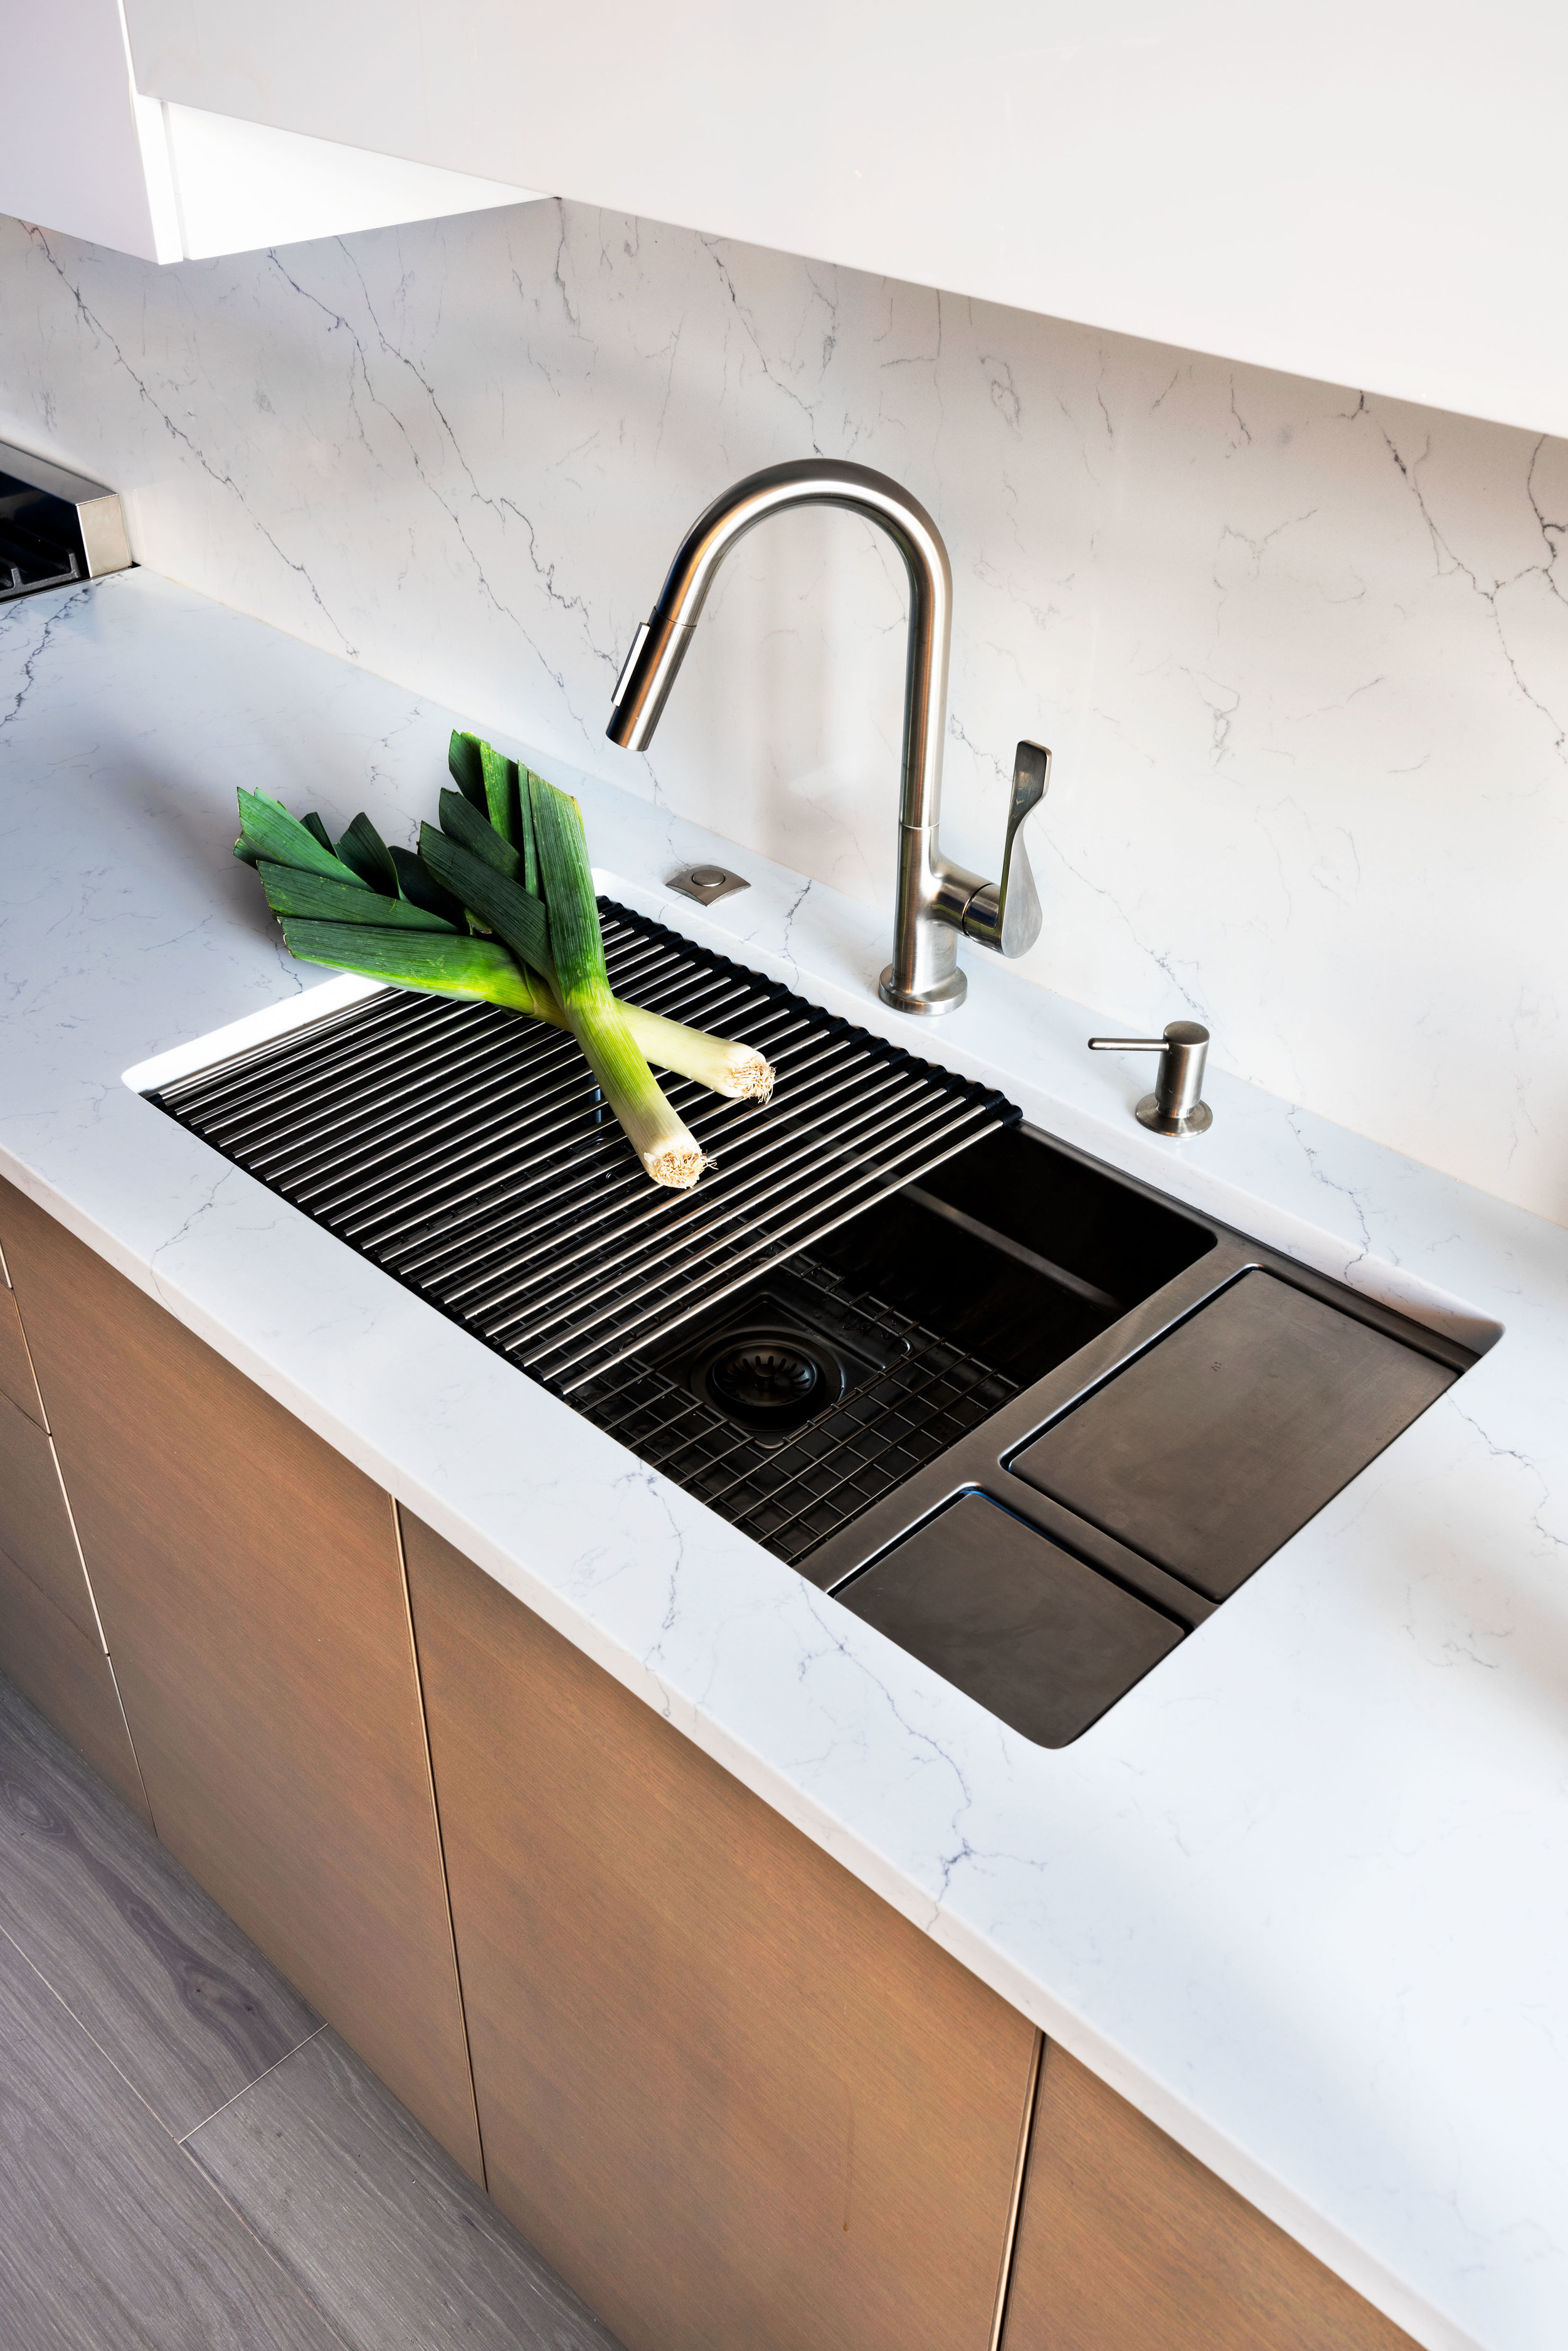 Westover double sink with counter expansion.